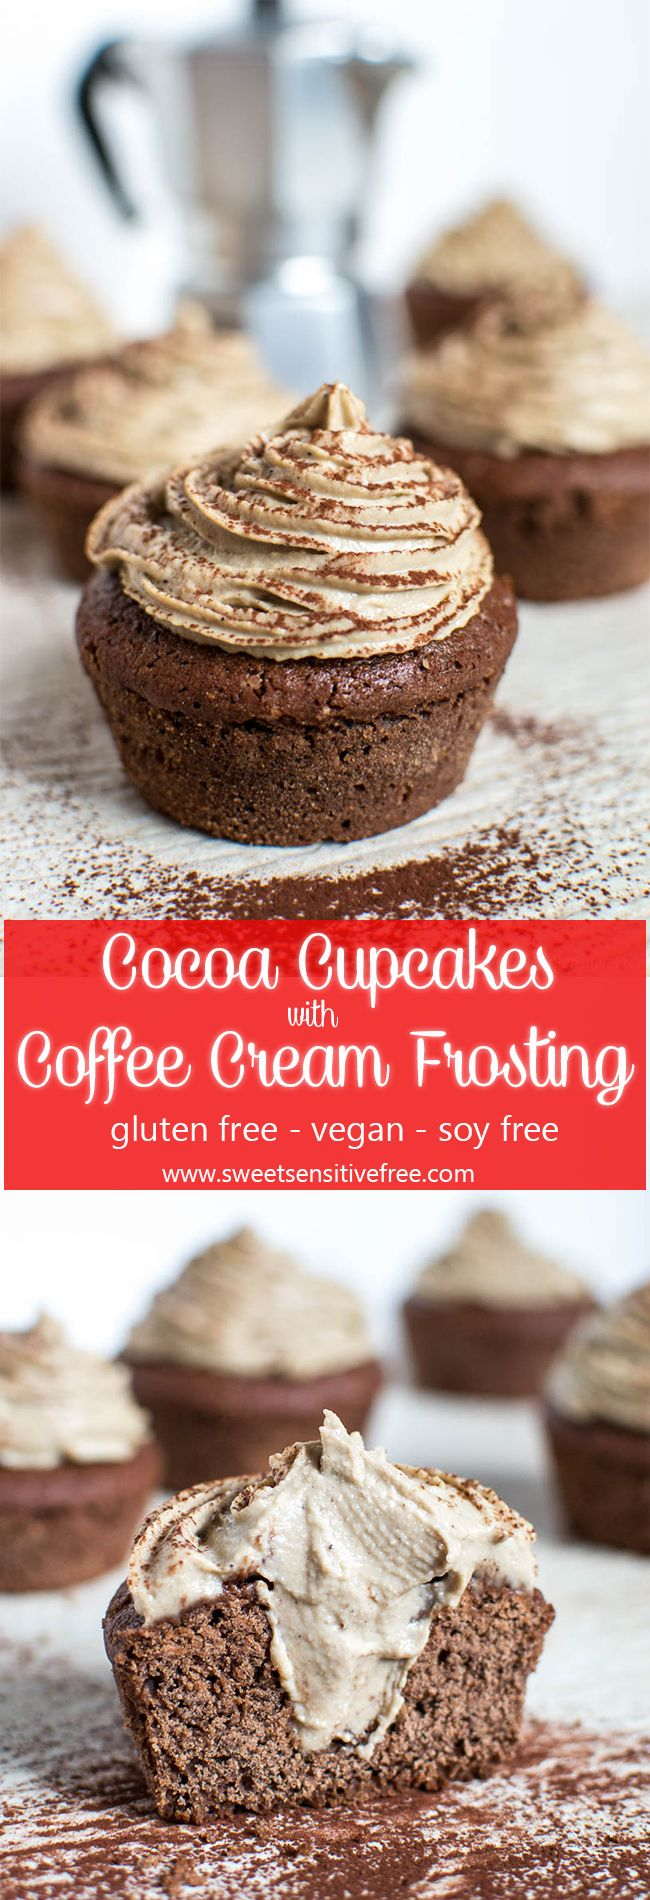 These scrumptious cupcakes are gluten free and 100% vegan, I've used aquafaba in the batter and the delicious coffee frosting is dairy-free too ;)